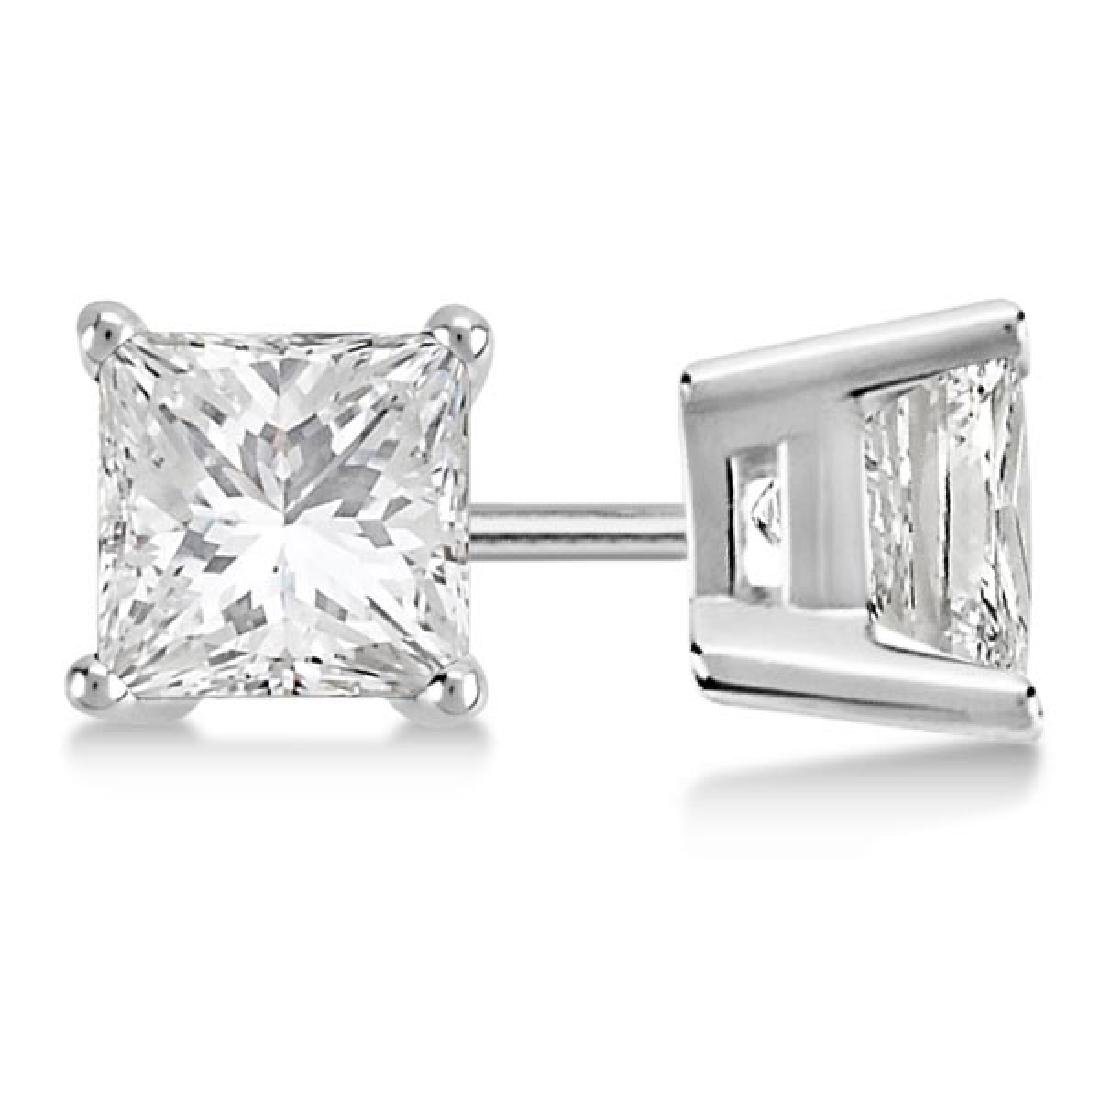 Certified 1.16 CTW Princess Diamond Stud Earrings F/SI2